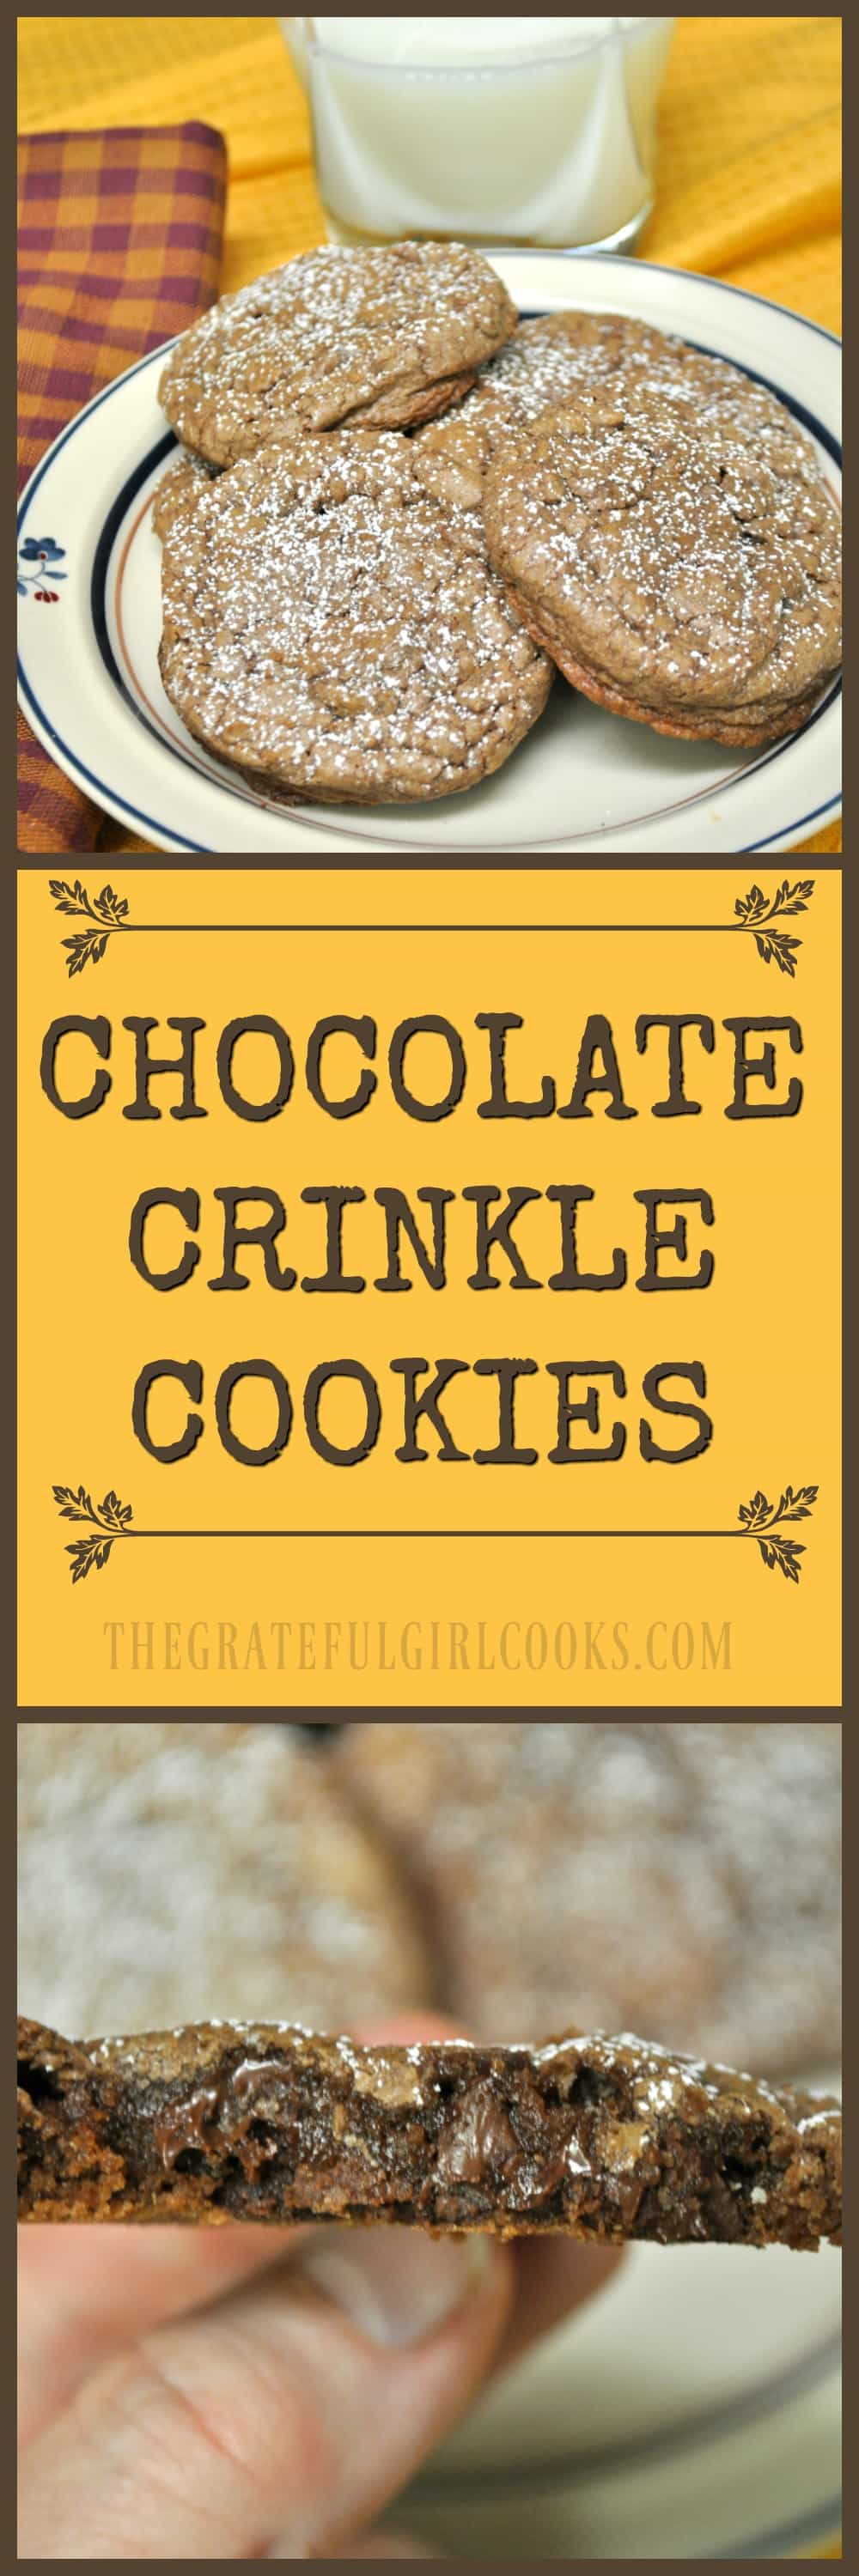 "Chocolate Crinkle Cookies / The Grateful Girl Cooks! How can you go wrong with easy to make chocolate, chocolate chip cookies that get all cute and ""crinkly"" when you bake 'em?"